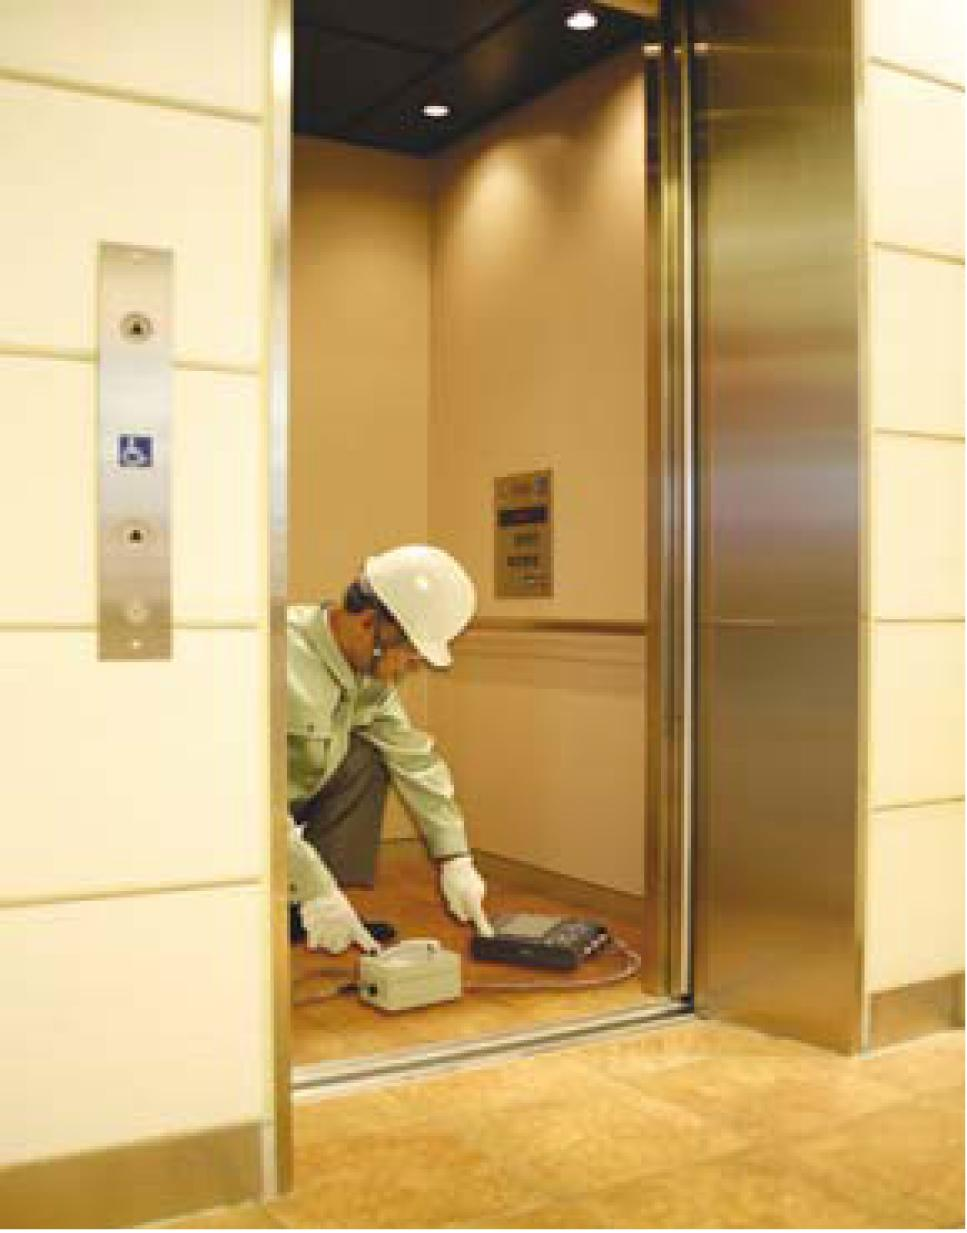 Measure The Vibration Of An Elevator To Analyze Ride Comfort Hioki